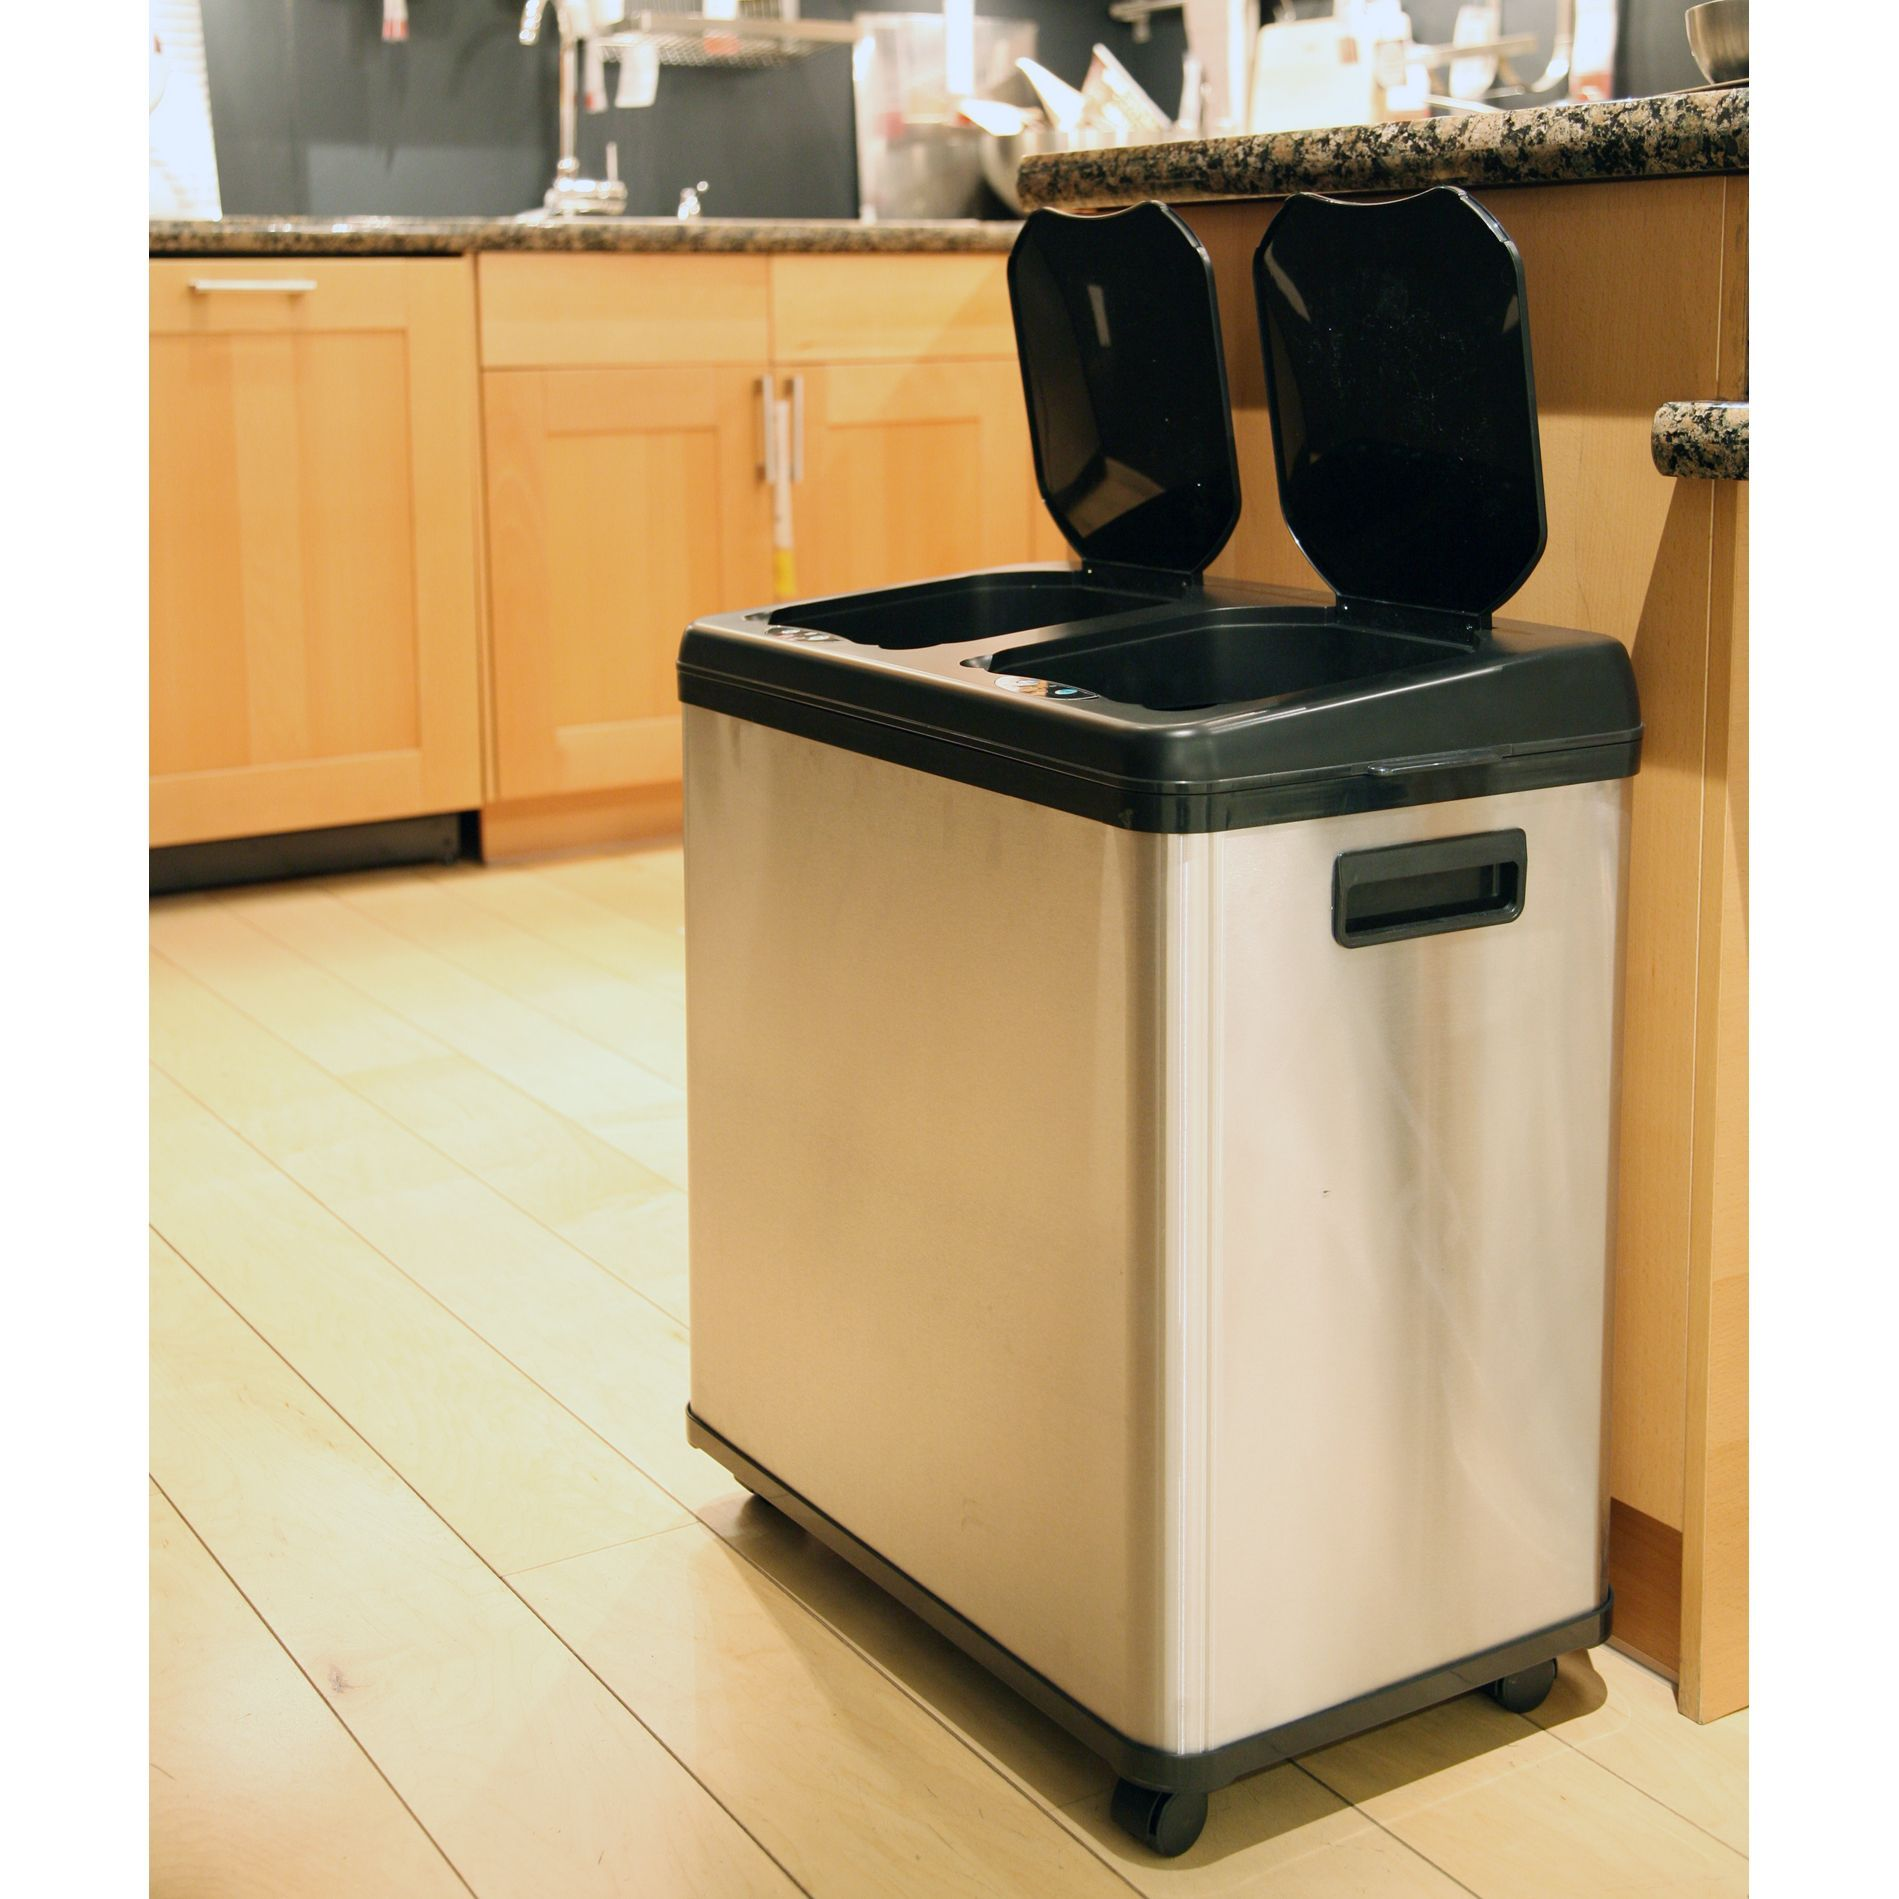 Kitchen Trash Can Dimensions And Bathroom Itouchless Stainless Steel Dual Compartment Touchless